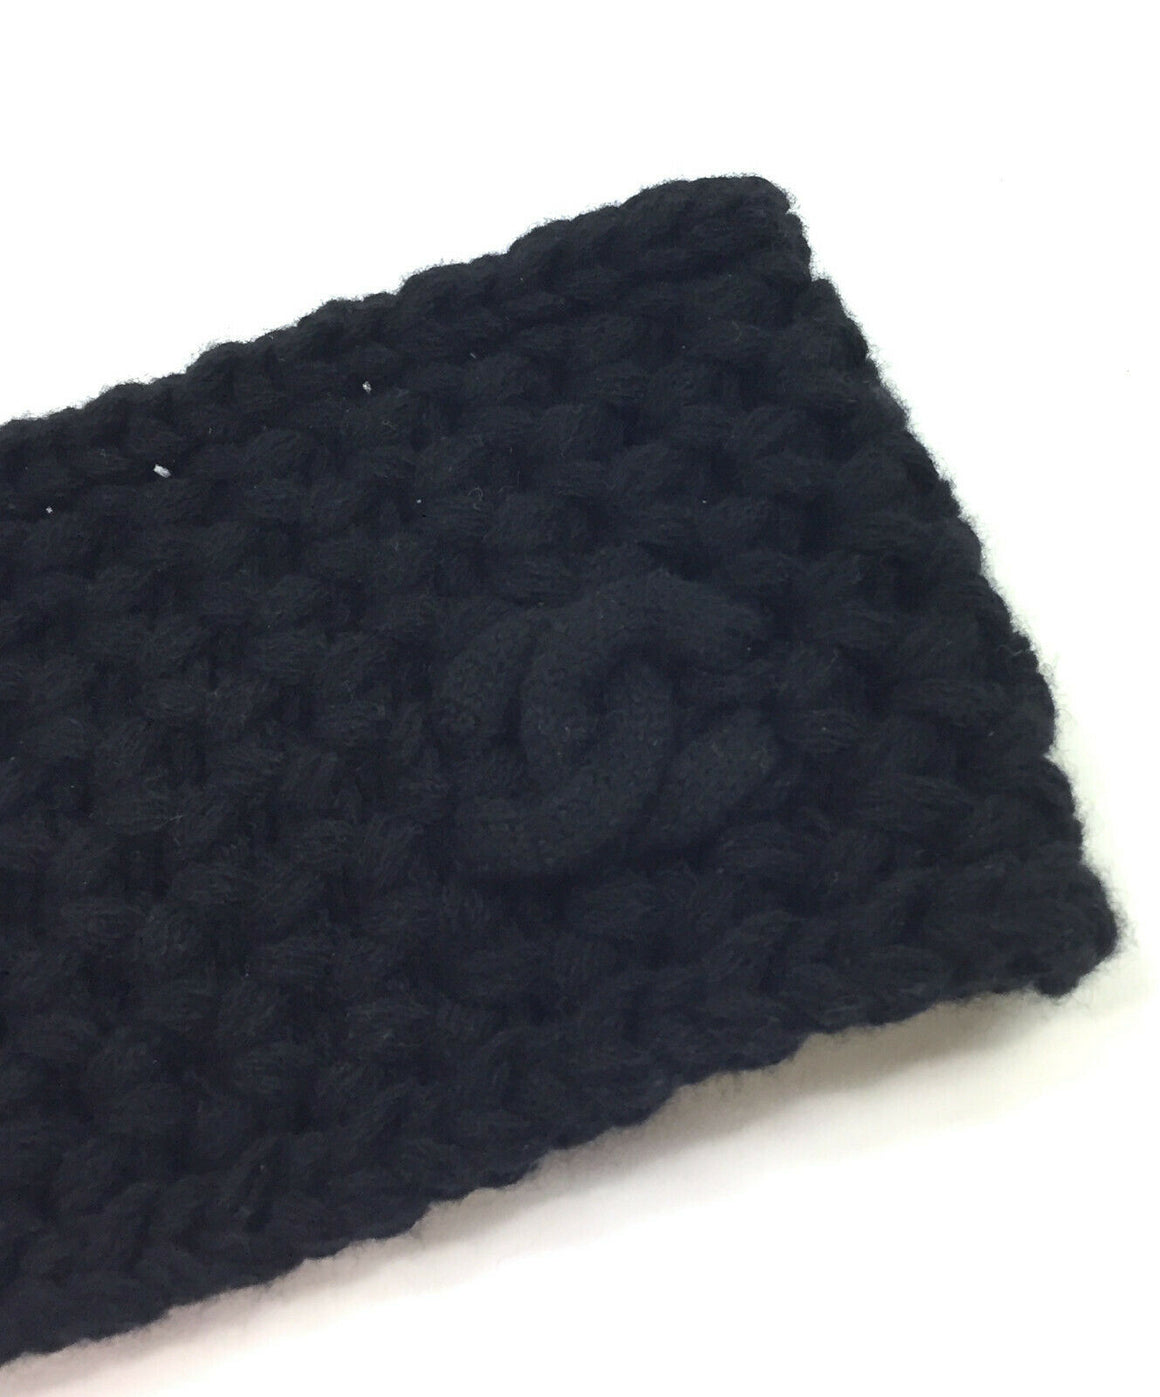 CHANEL Black Cashmere Knit Headband Size: O/S